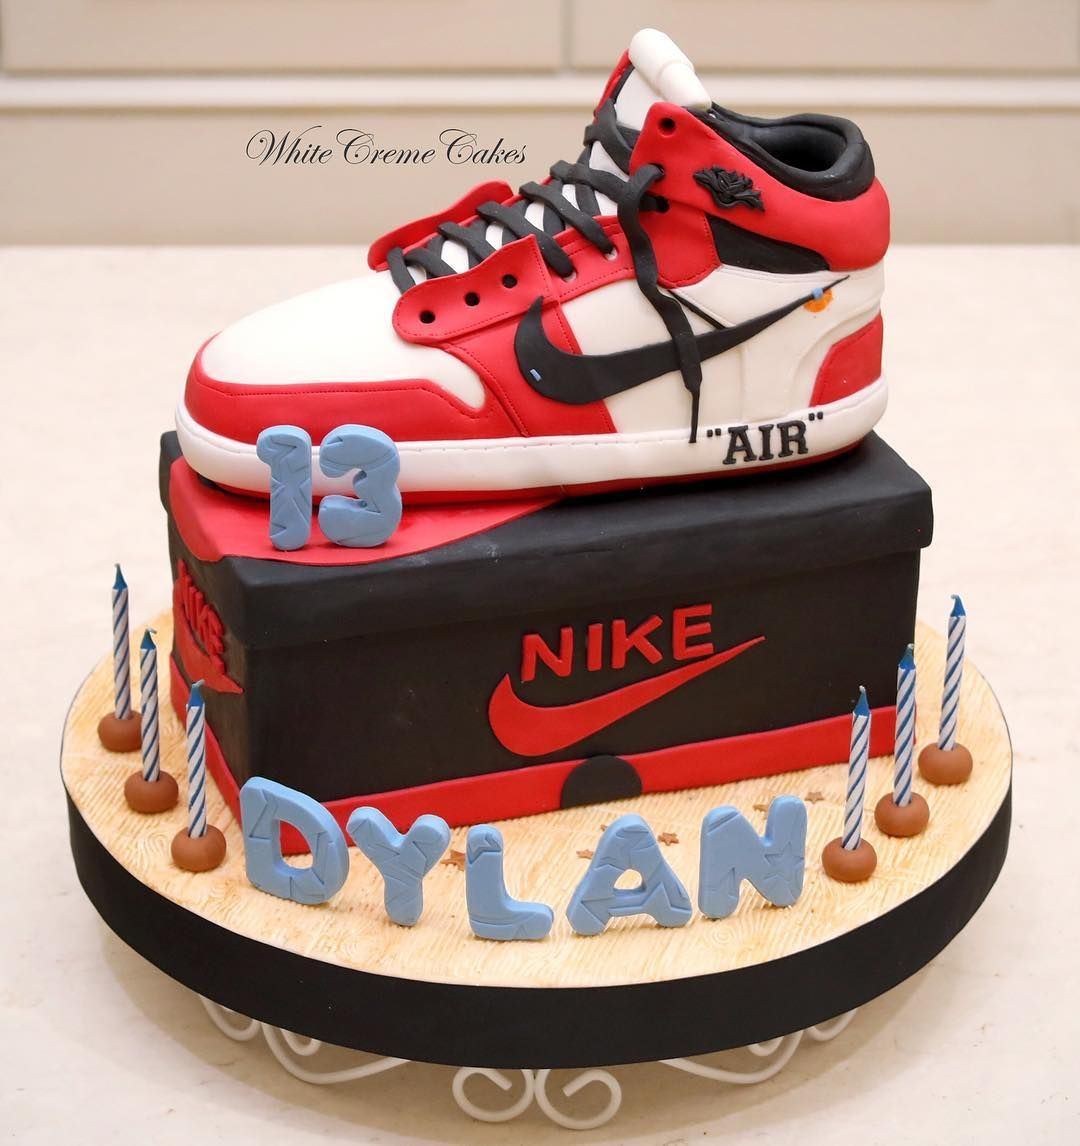 Pin By Stay On Cake With Images Jordan Cake Birthday Cakes